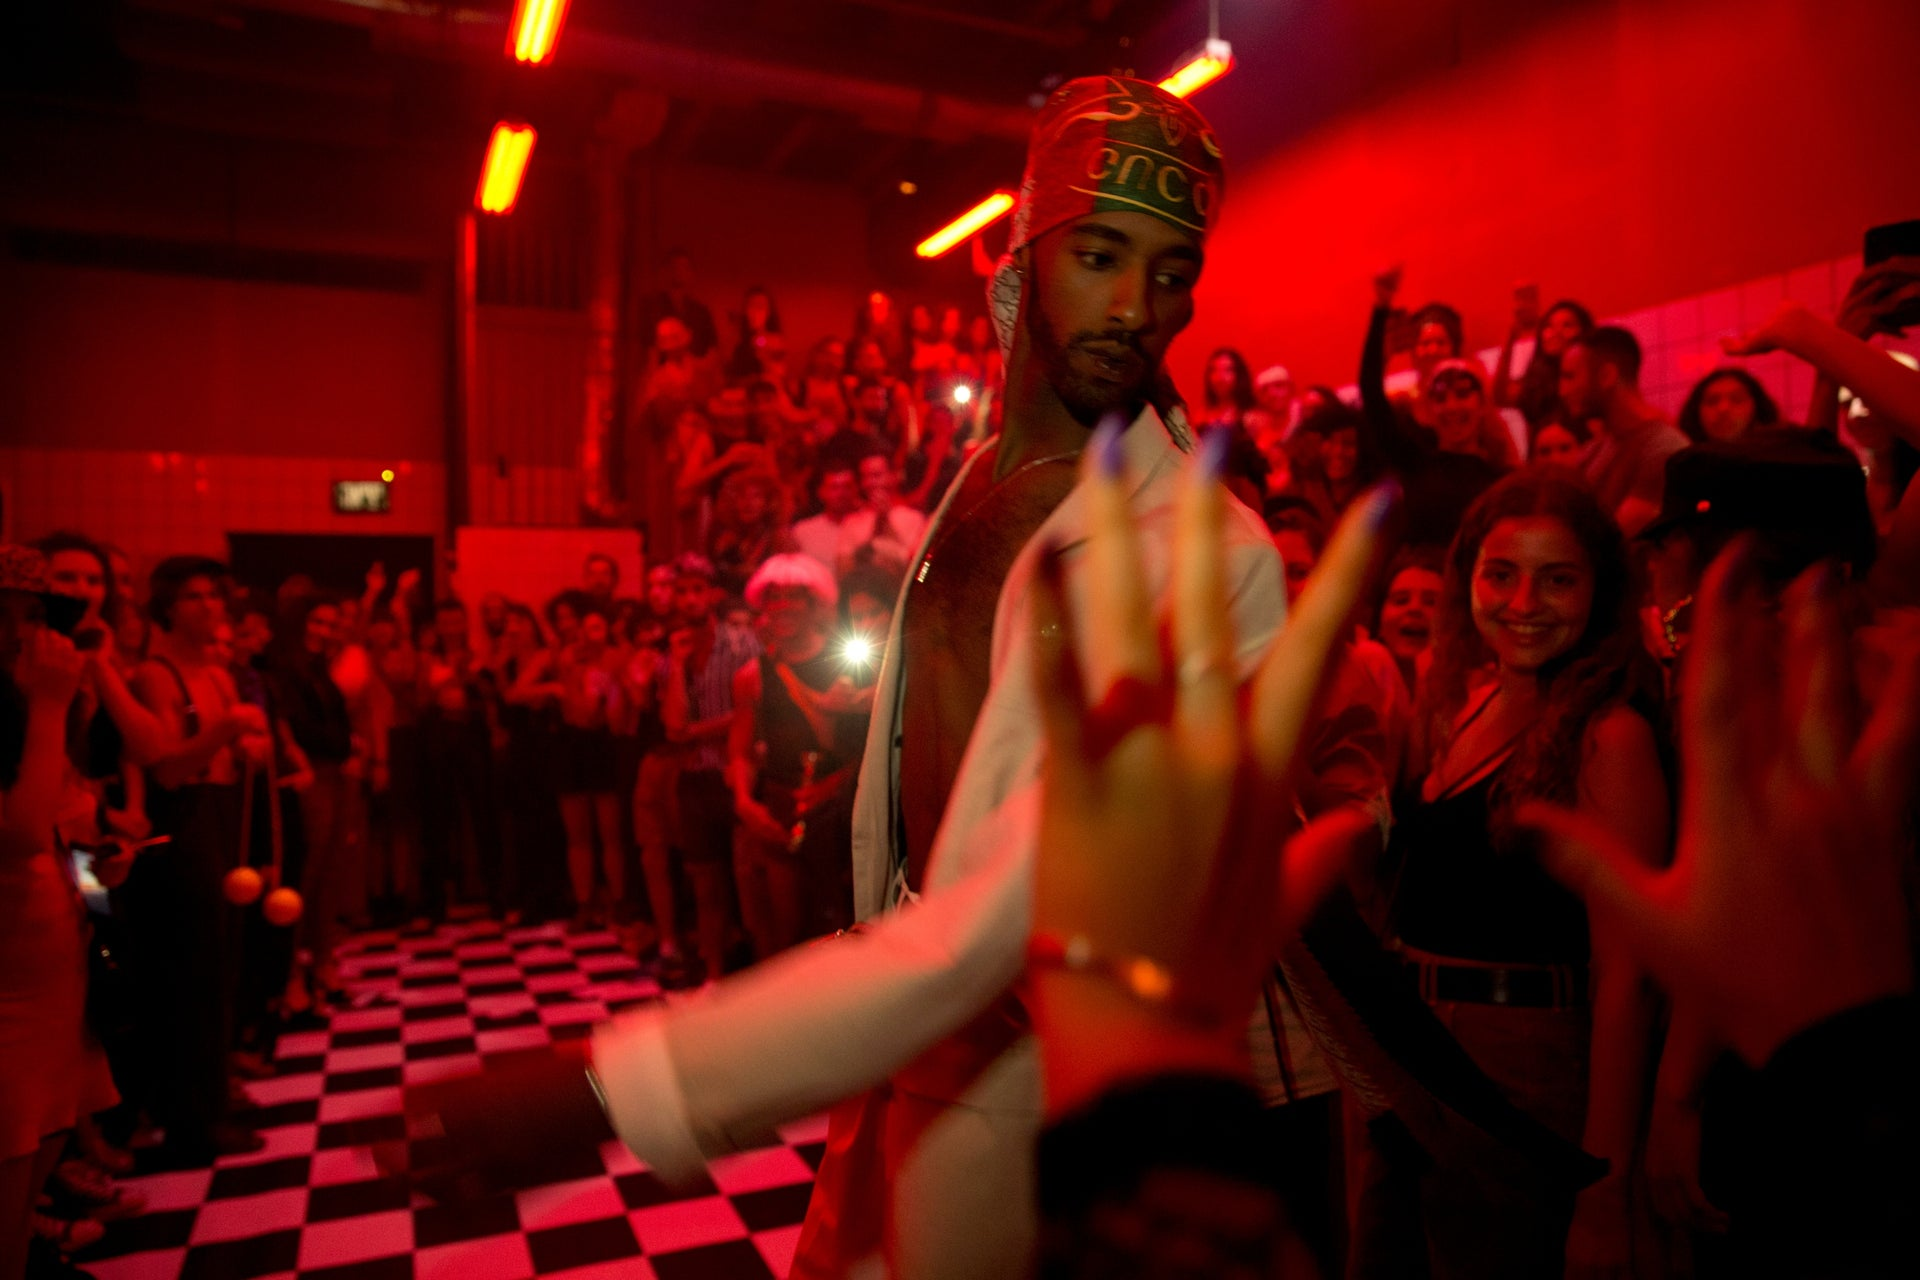 A competitor participating in the walking the runway category at the Alphabet Club ball in Tel Aviv, September 26, 2019.